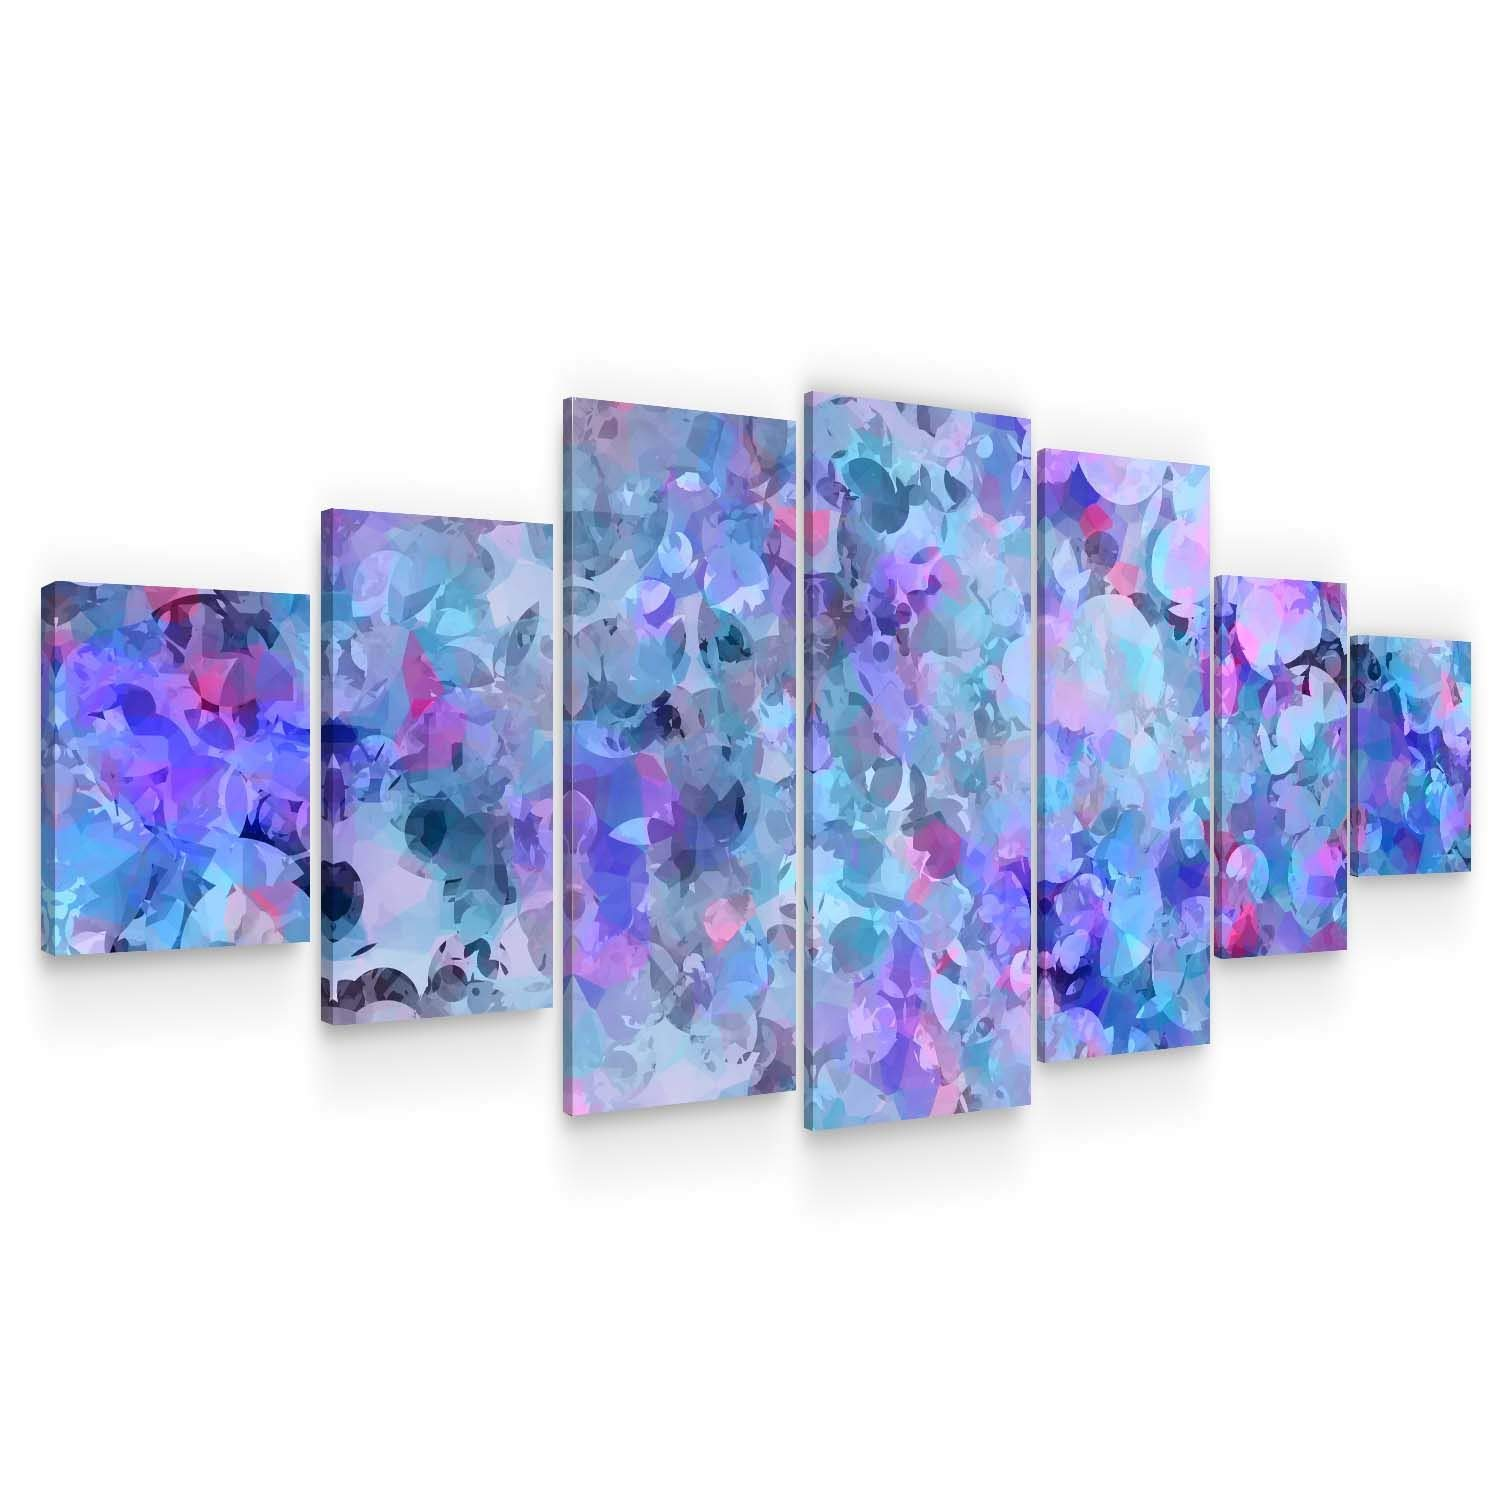 STARTONIGHT Huge Canvas Wall Art Lovely Blue Abstract - Large Framed Set of 7 40 x 95 Inches